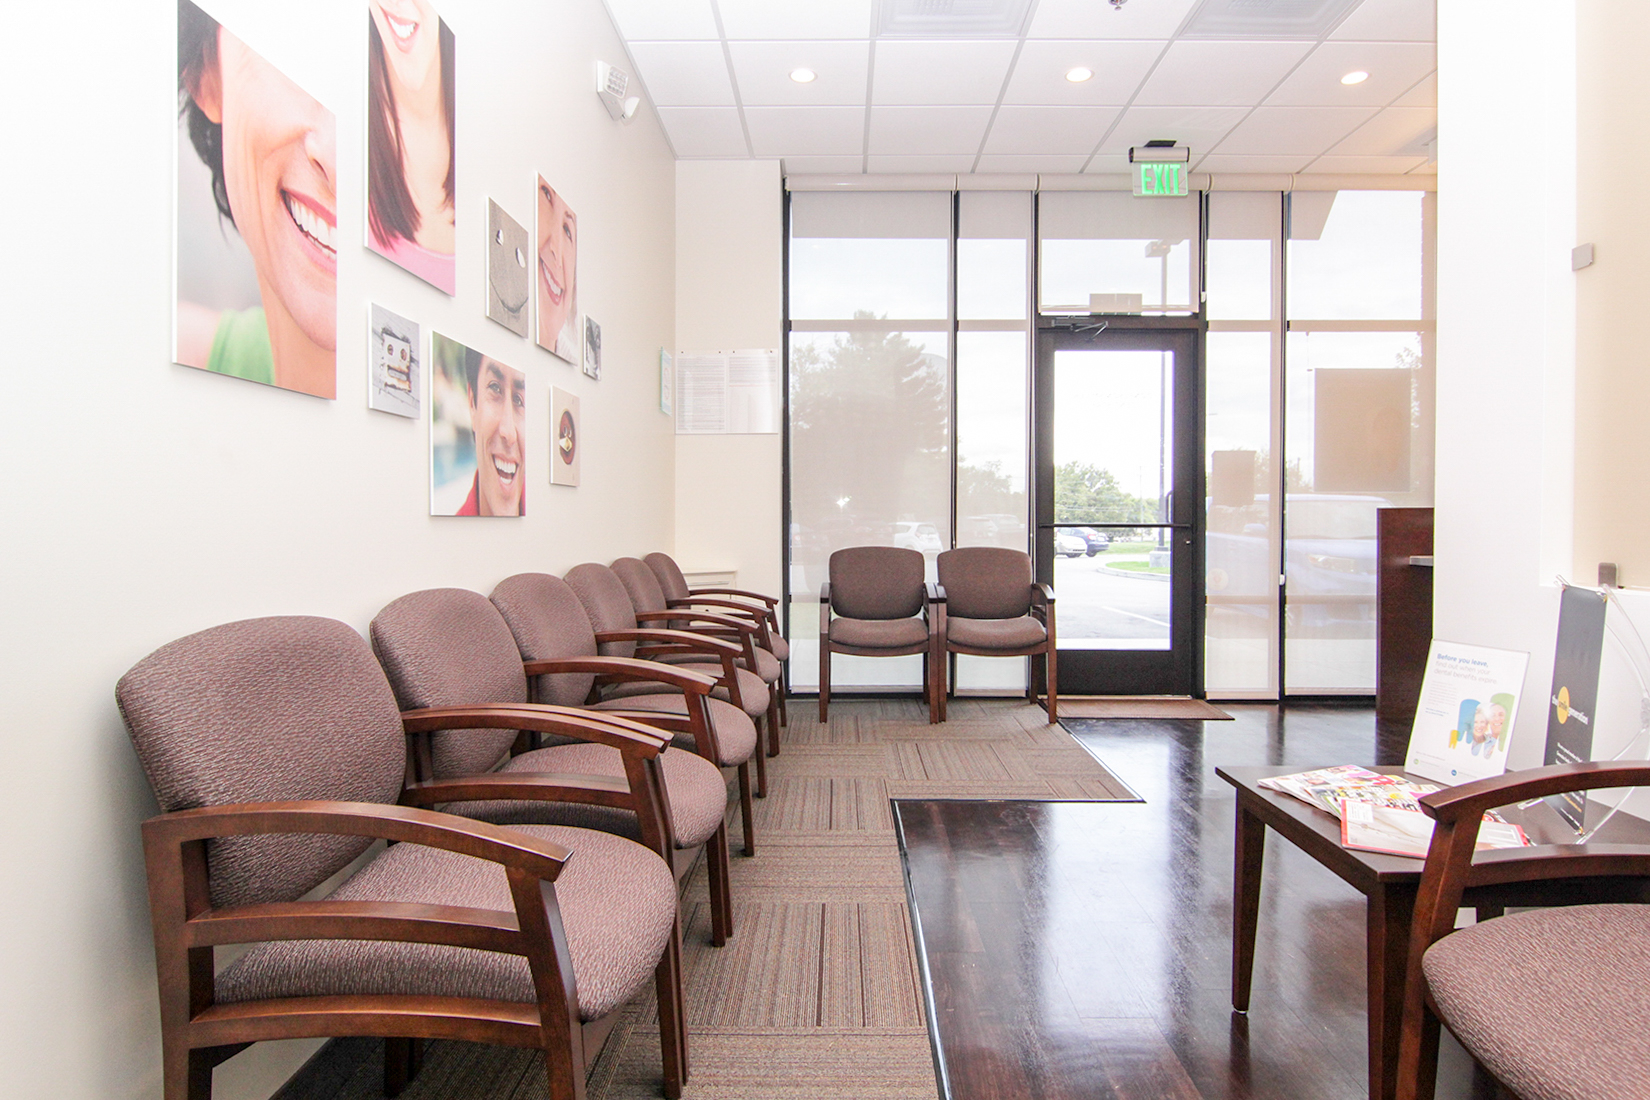 Donelson Smiles Dentistry image 2